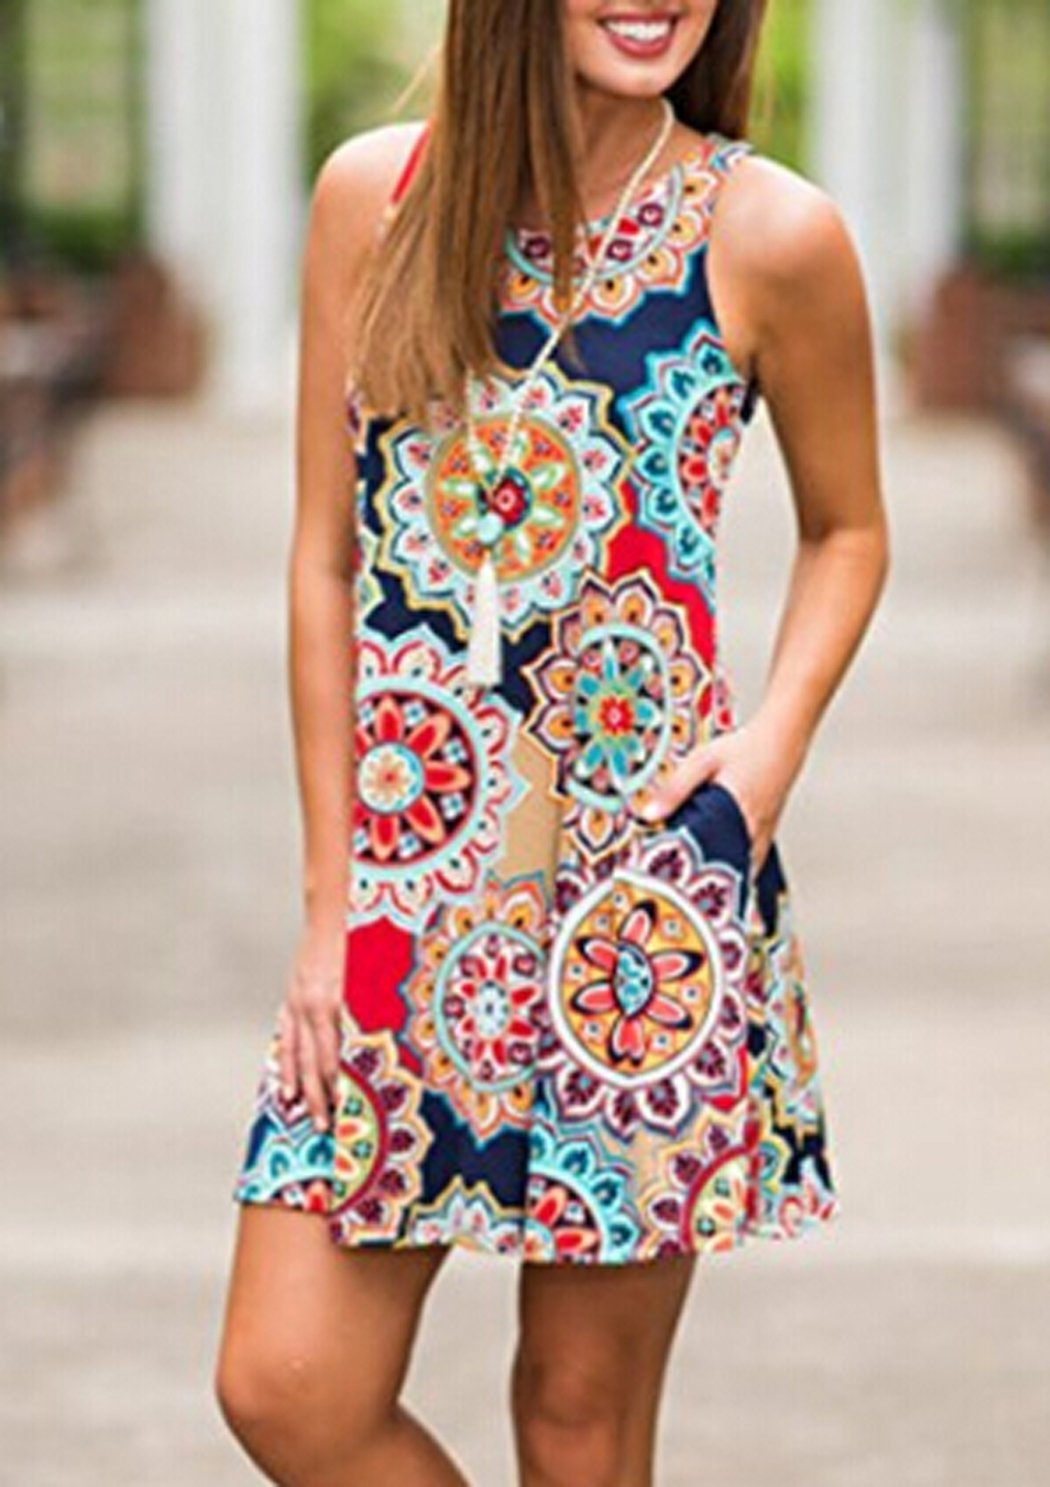 POGTMM Ladies Casual Ethnic Flower Print Beach Loose Tank Plus Size Short Dresses(Navy Blue,XXL) by POGTMM (Image #4)